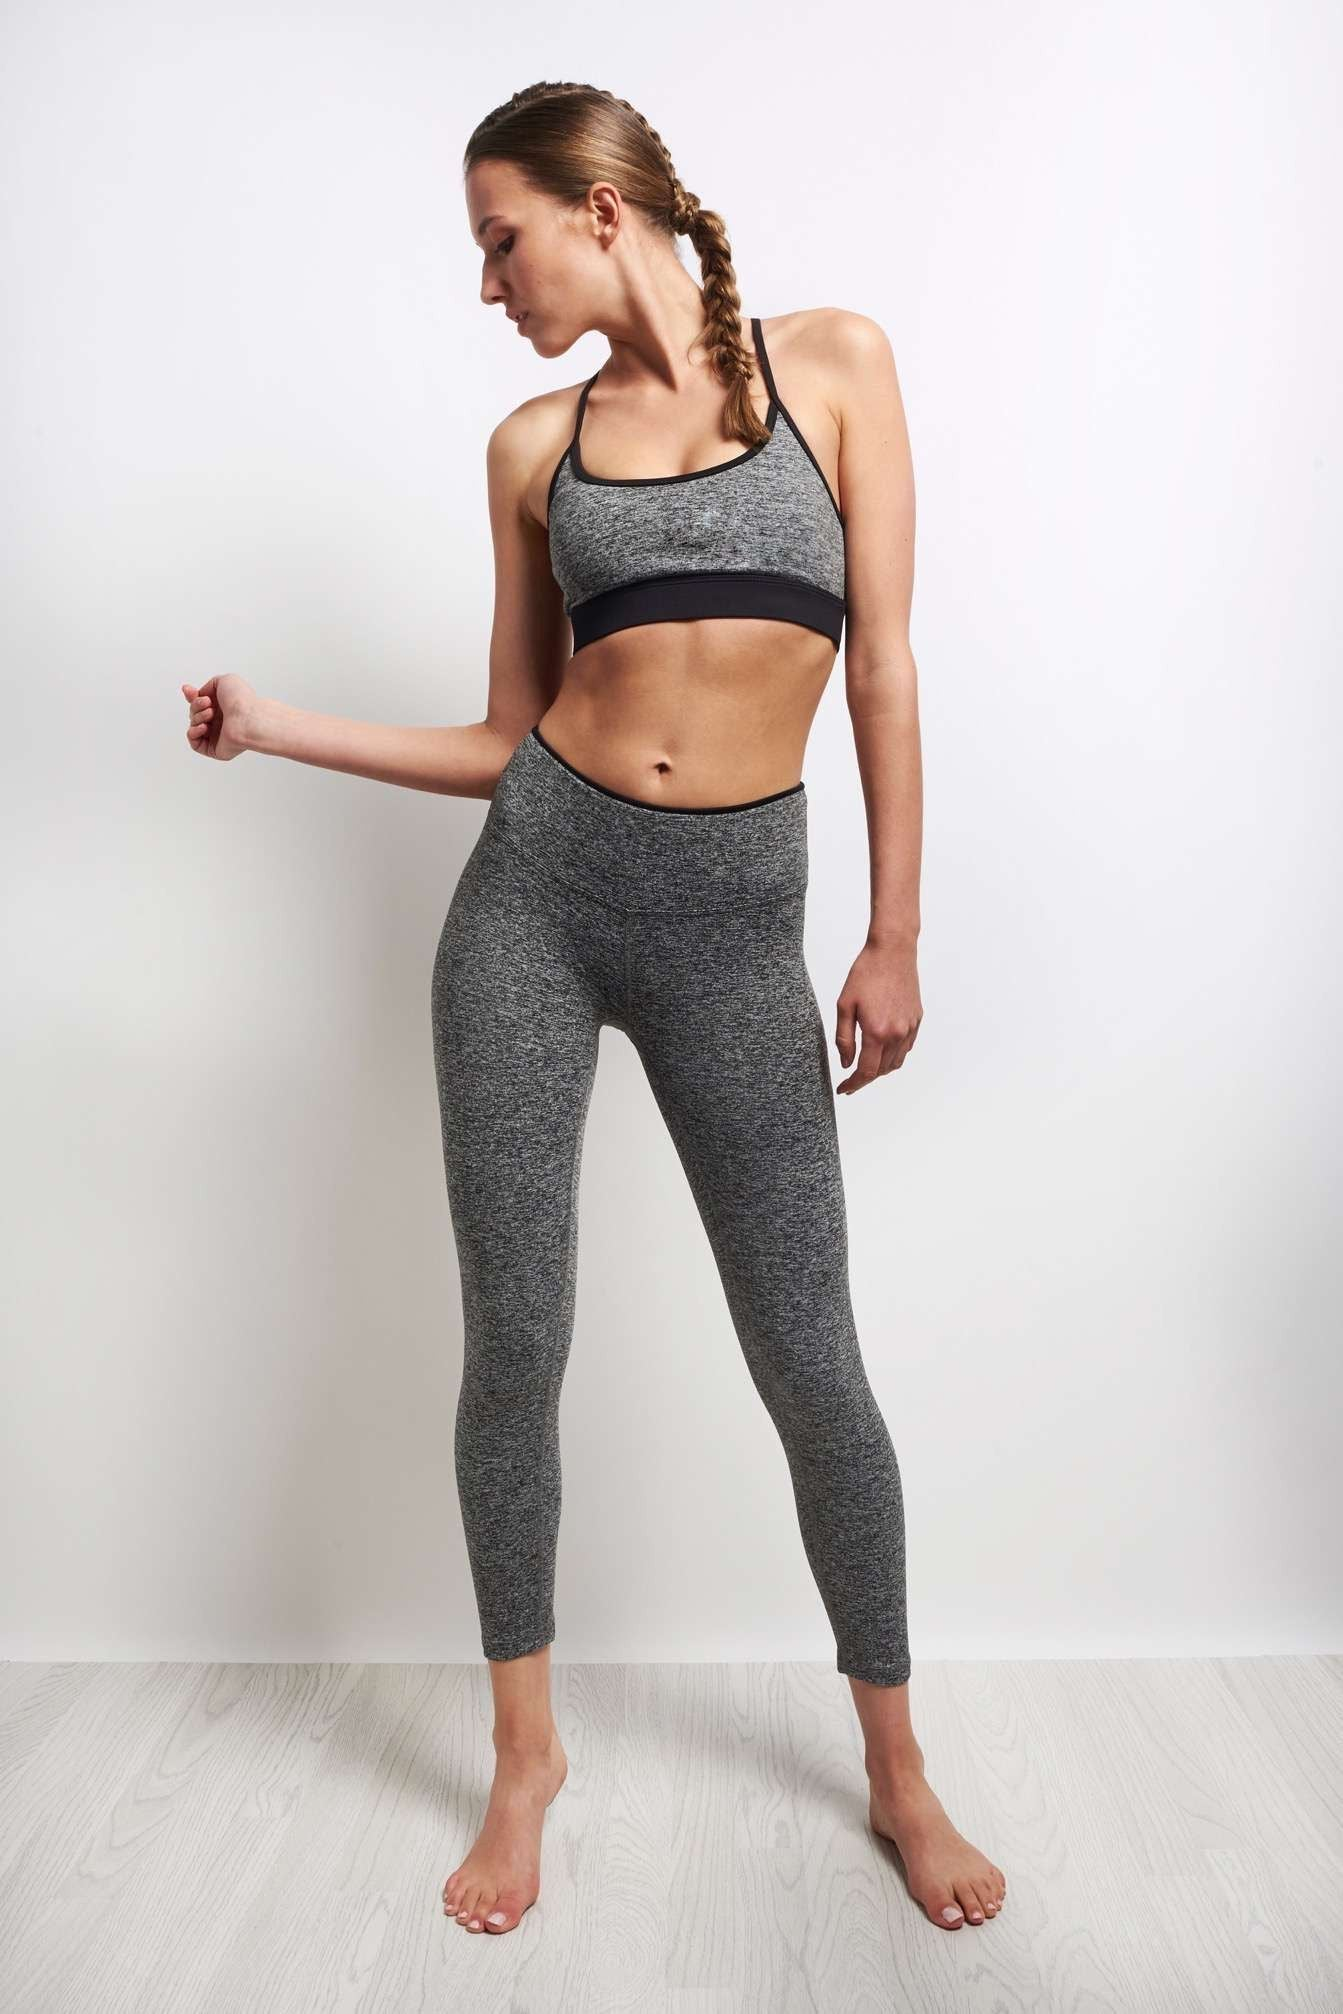 Koral Lucent Sports Bra - Heather Grey/Black image 1